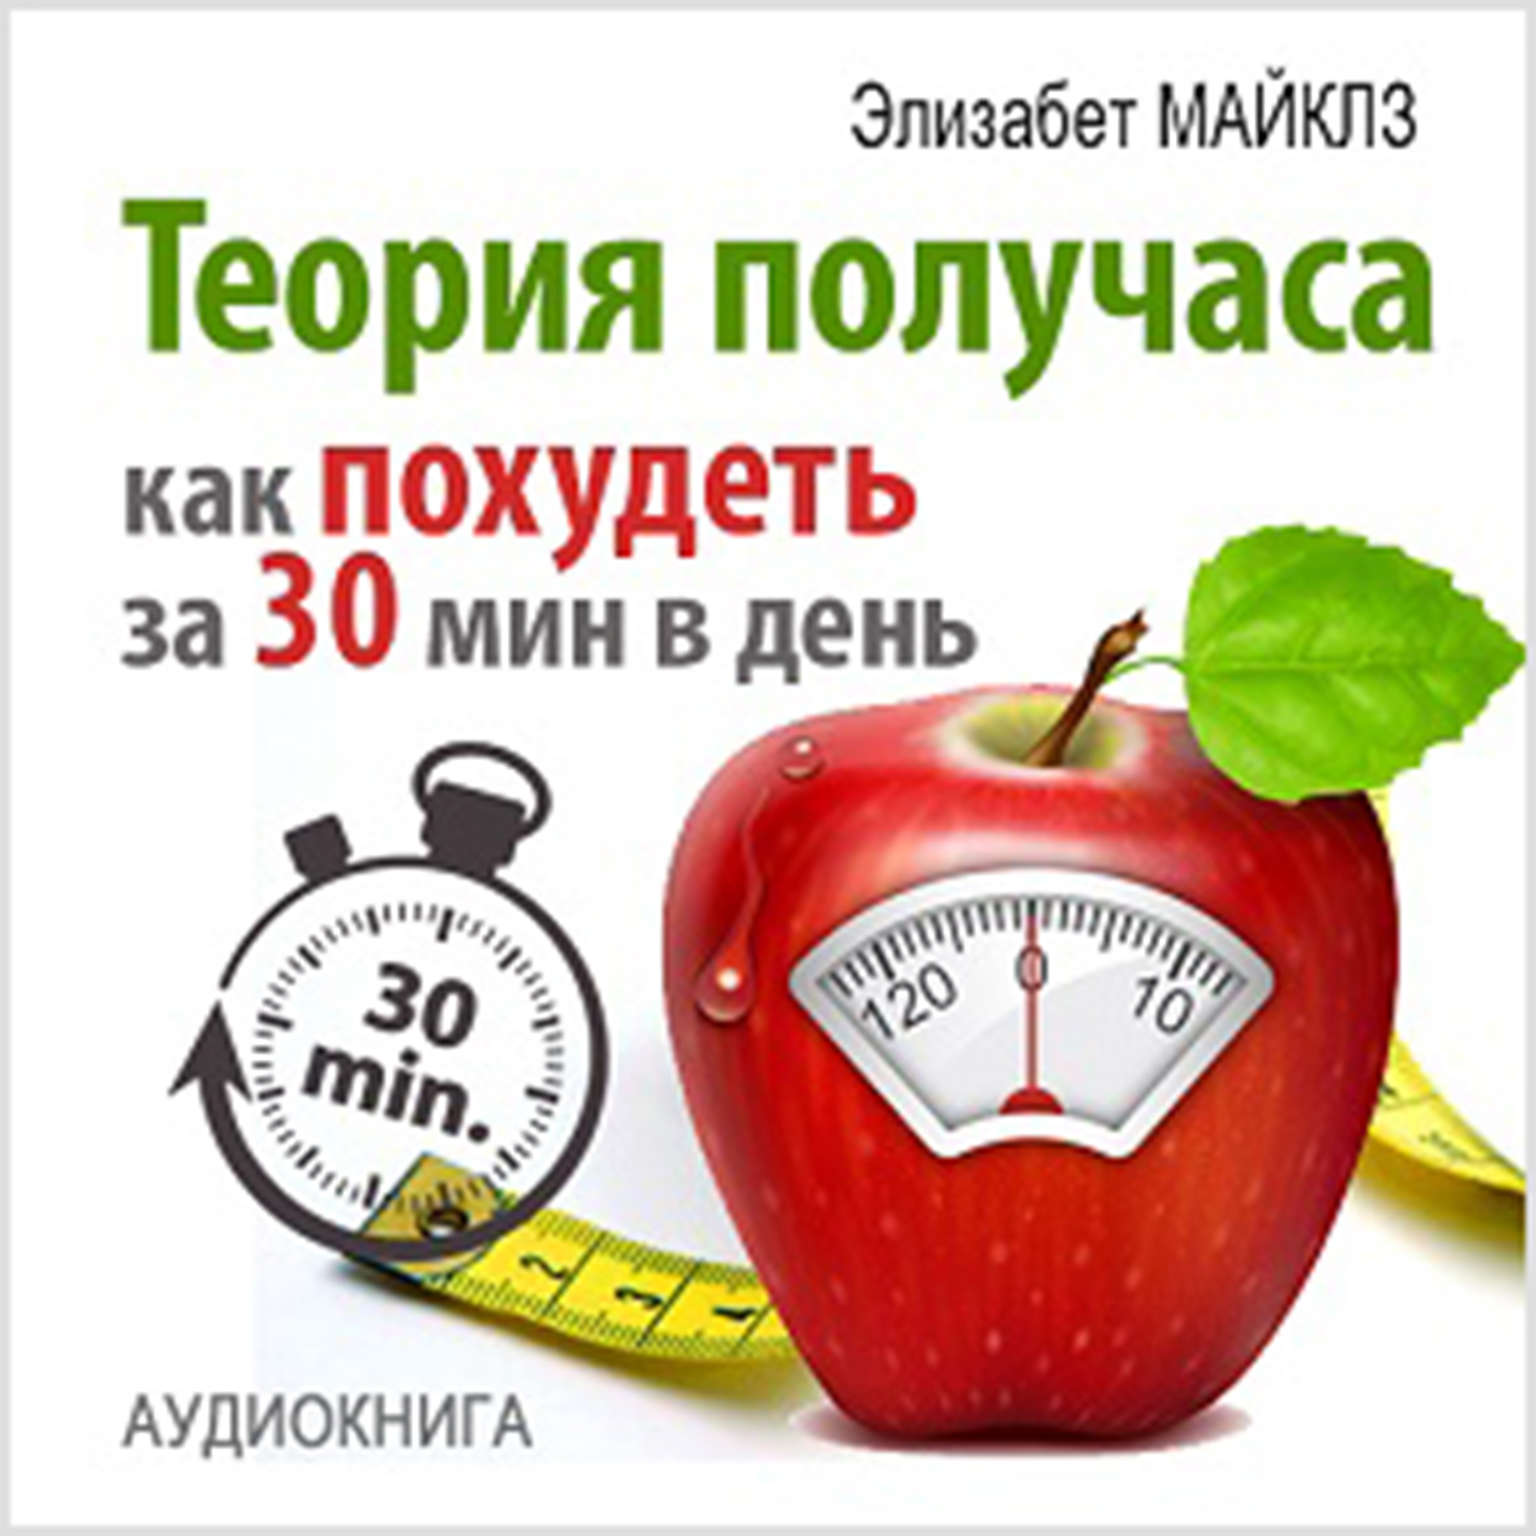 The Half Hour Method: How to Lose Weight in 30 Minutes a Day [Russian Edition] Audiobook, by Elizabeth Michels